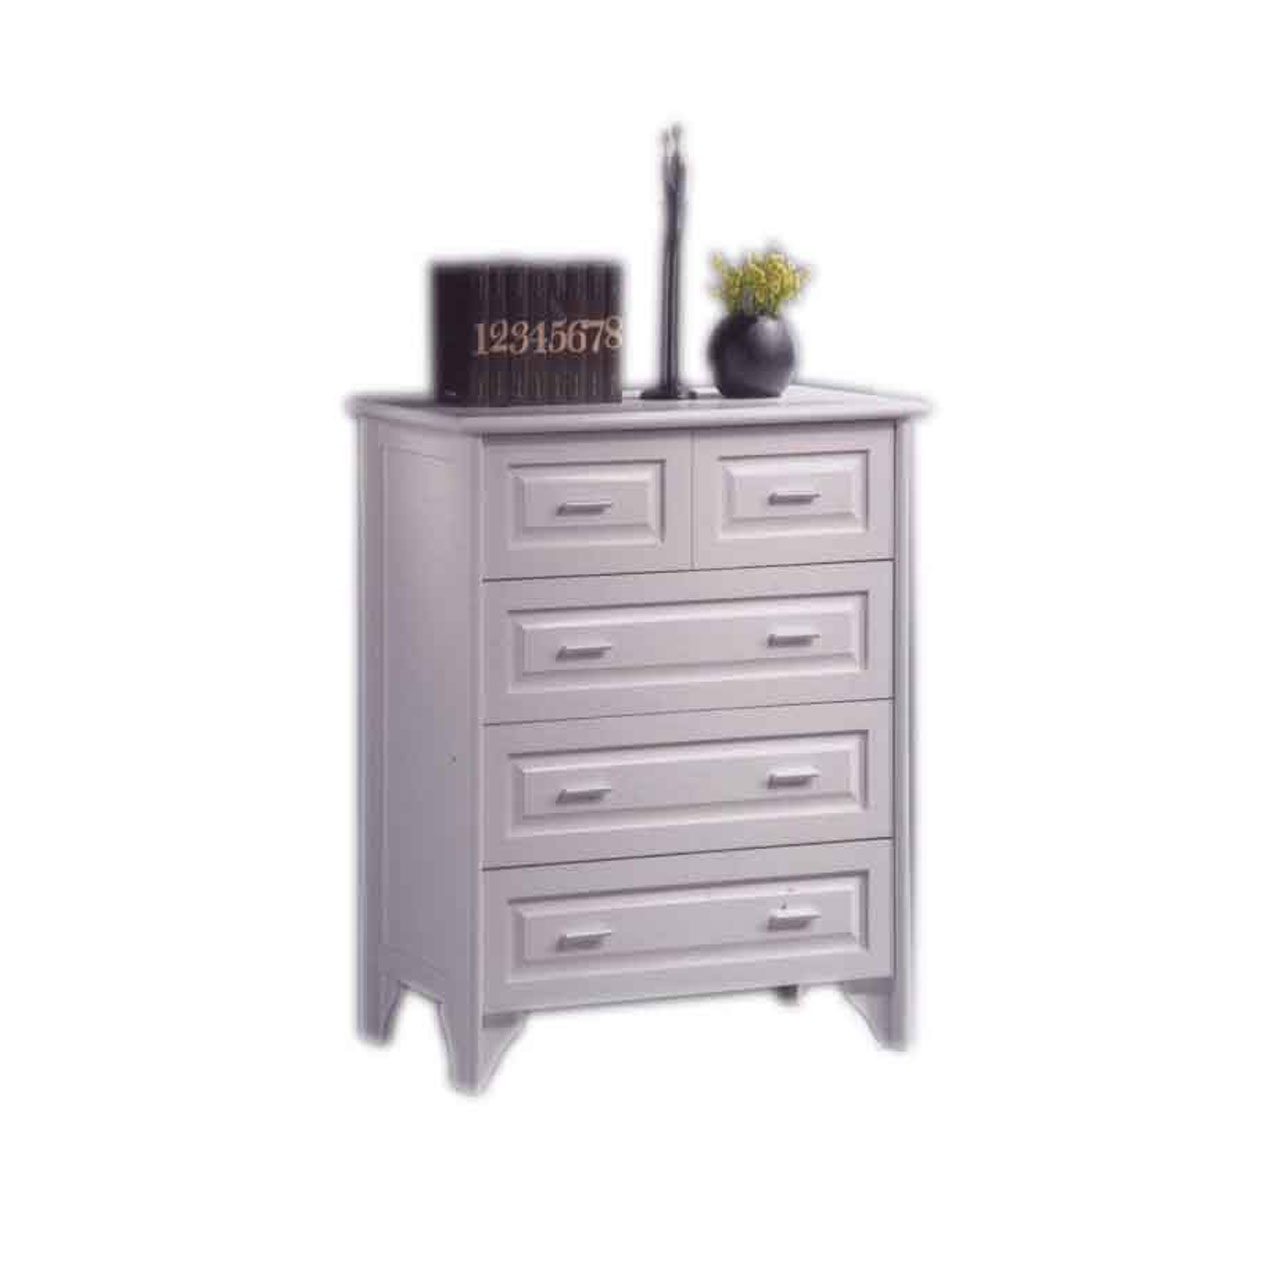 kelsey home snow drawers of white d furniture cor in long chest